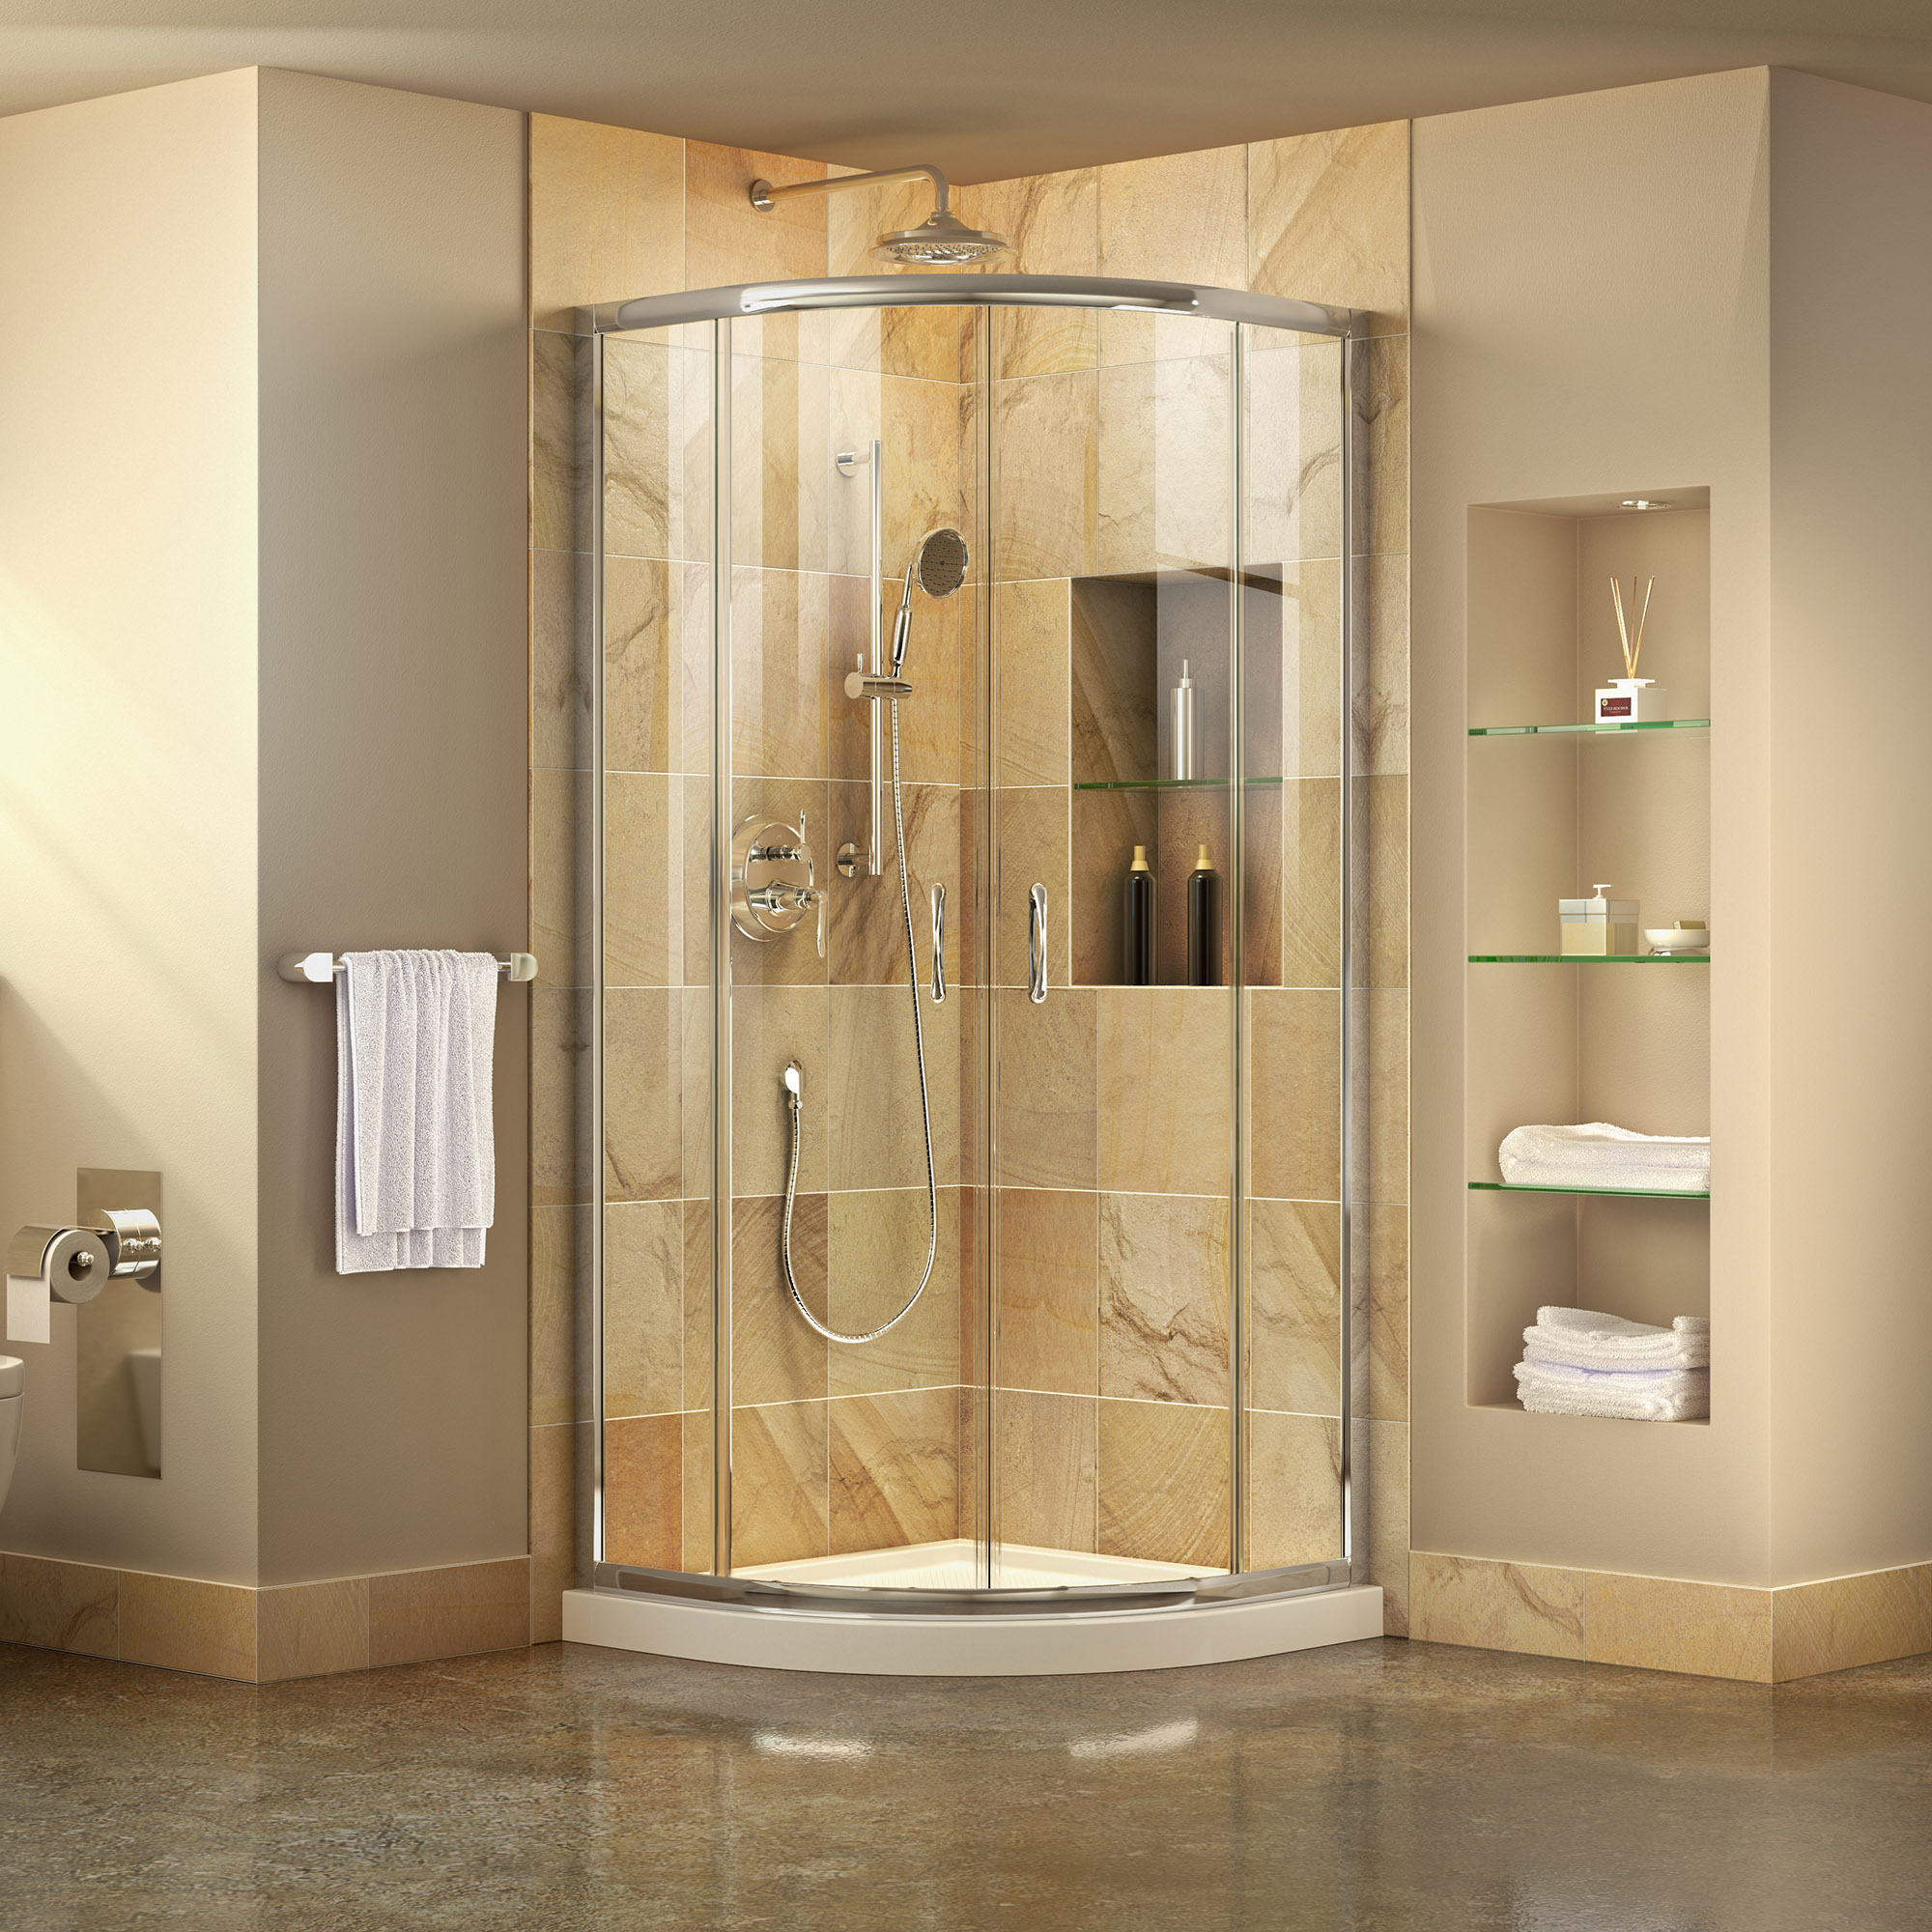 DreamLine Prime 33 in. D x 33 in. W x 74 3/4 in. H Clear Framed Sliding Shower Enclosure in Chrome, Corner Drain White Base Kit